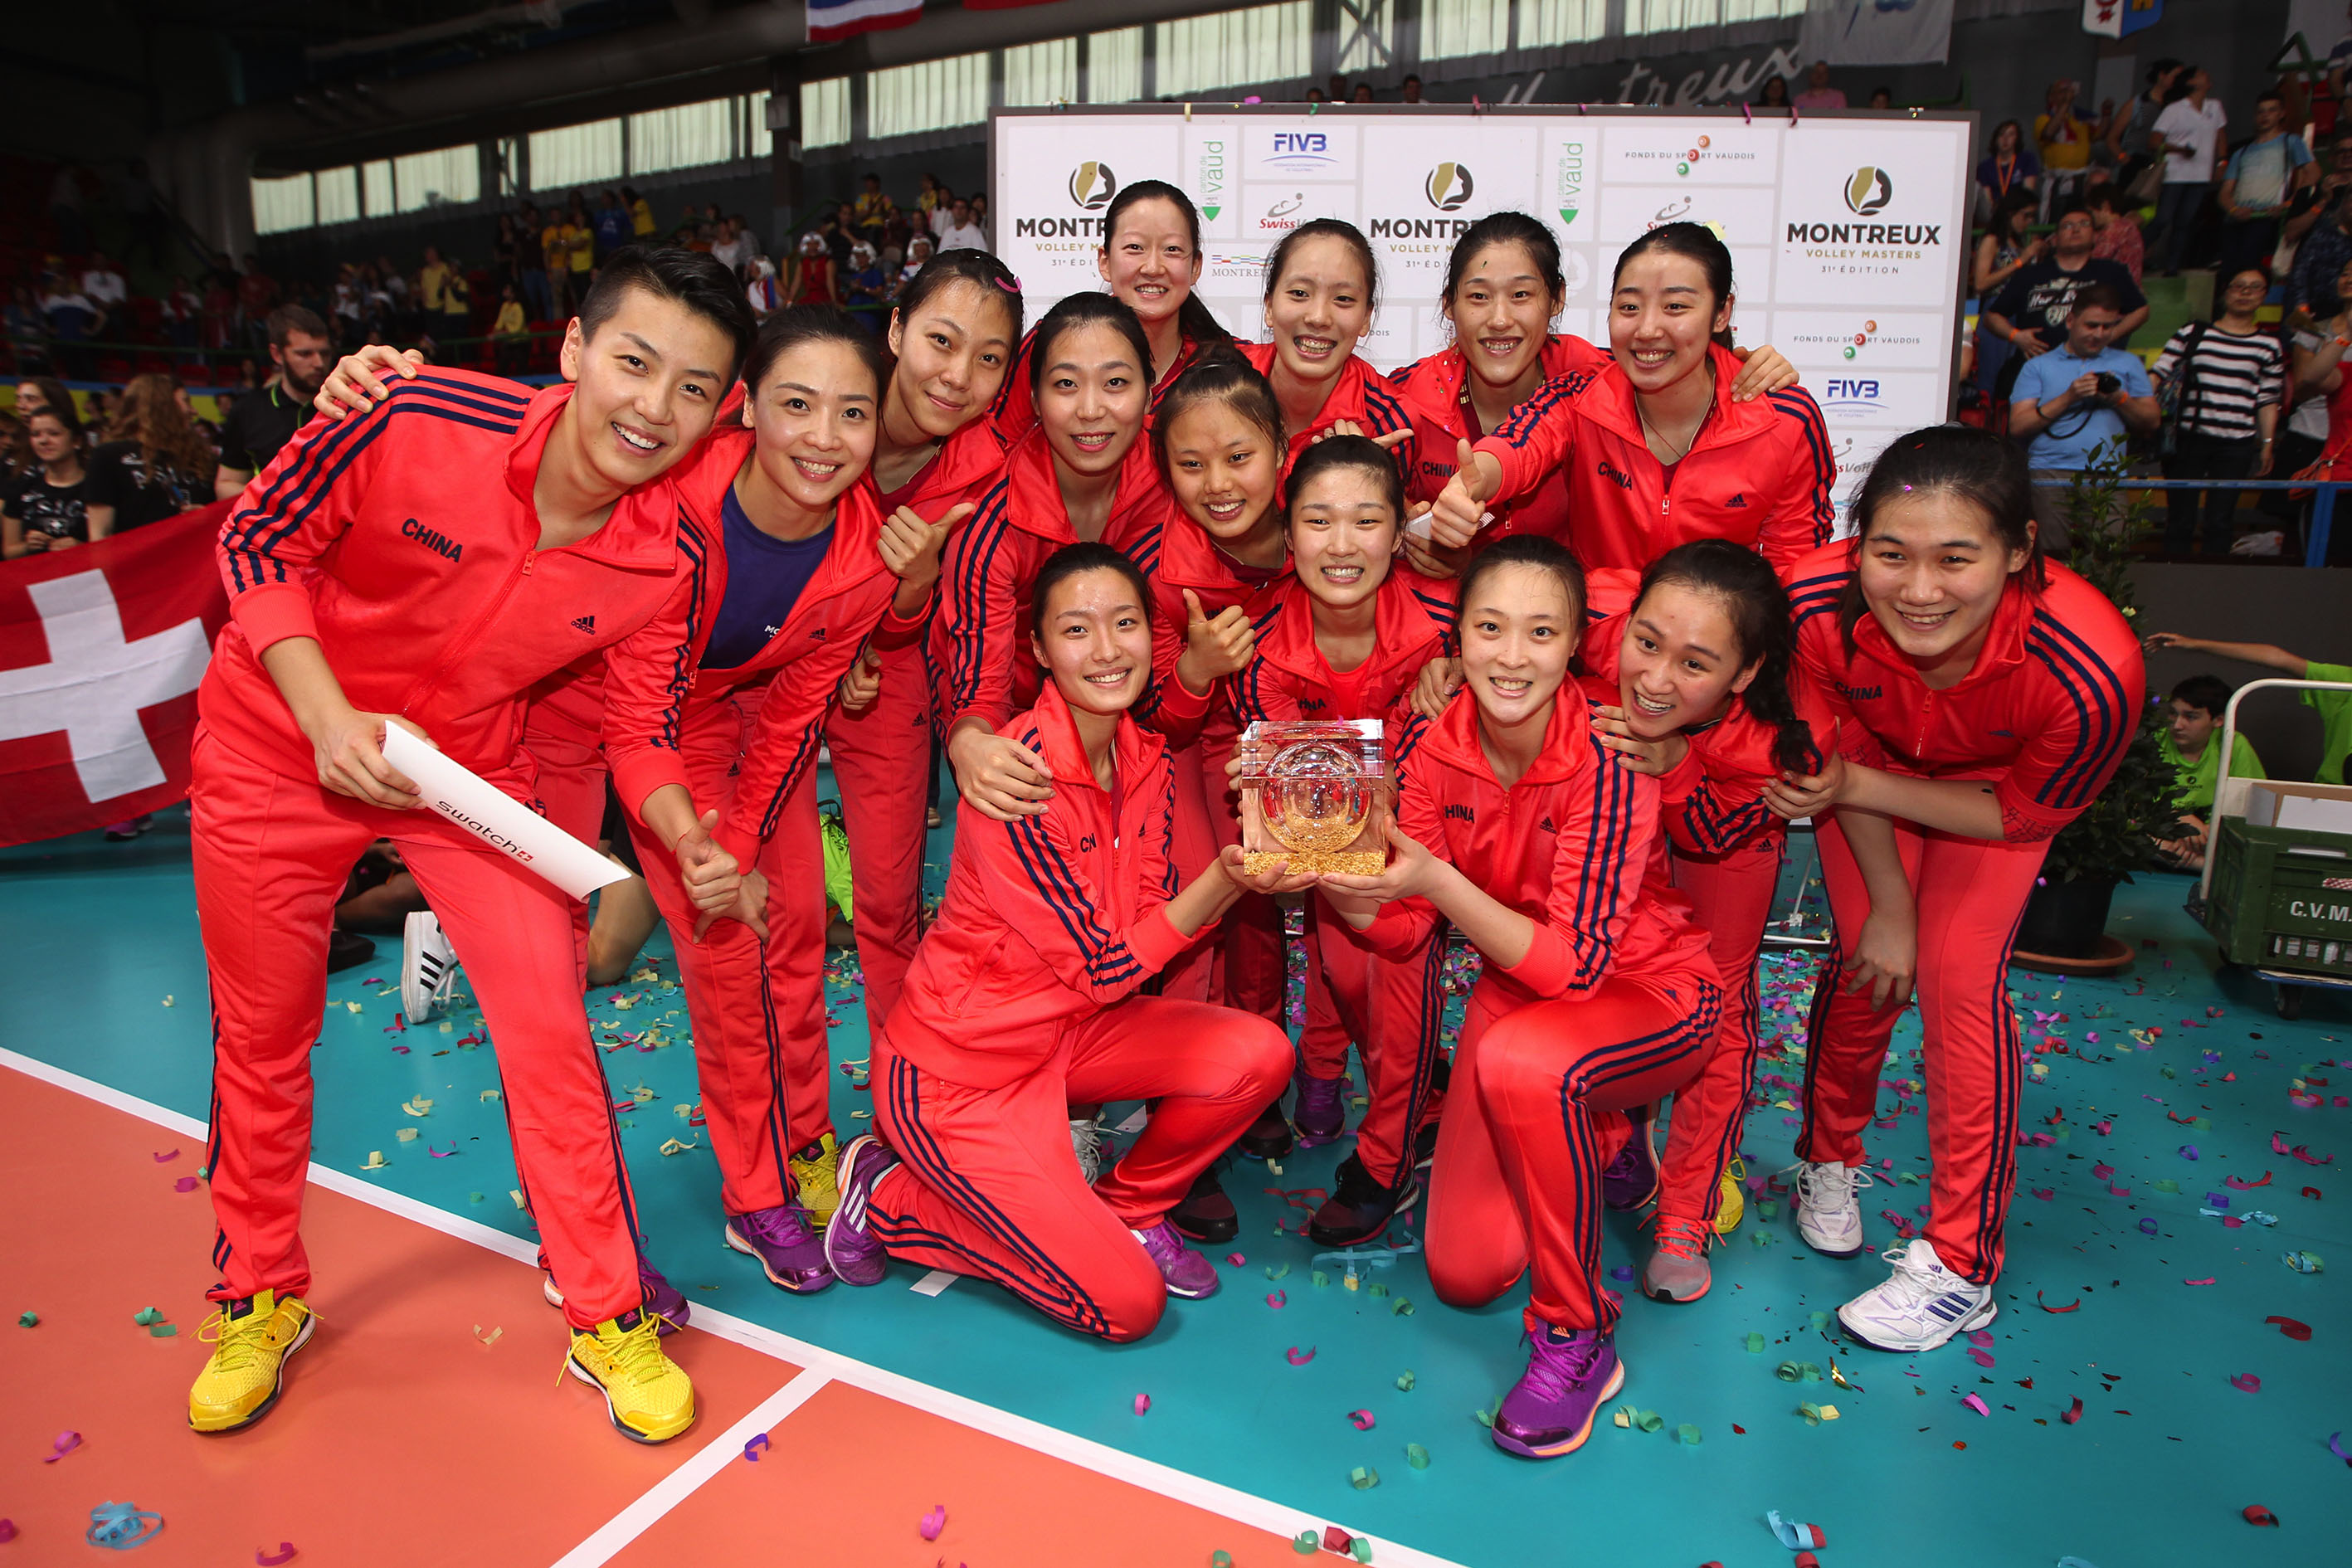 CHINA CROWNED MONTREUX VOLLEY MASTERS CHAMPIONS AFTER DEFEATING THAILAND